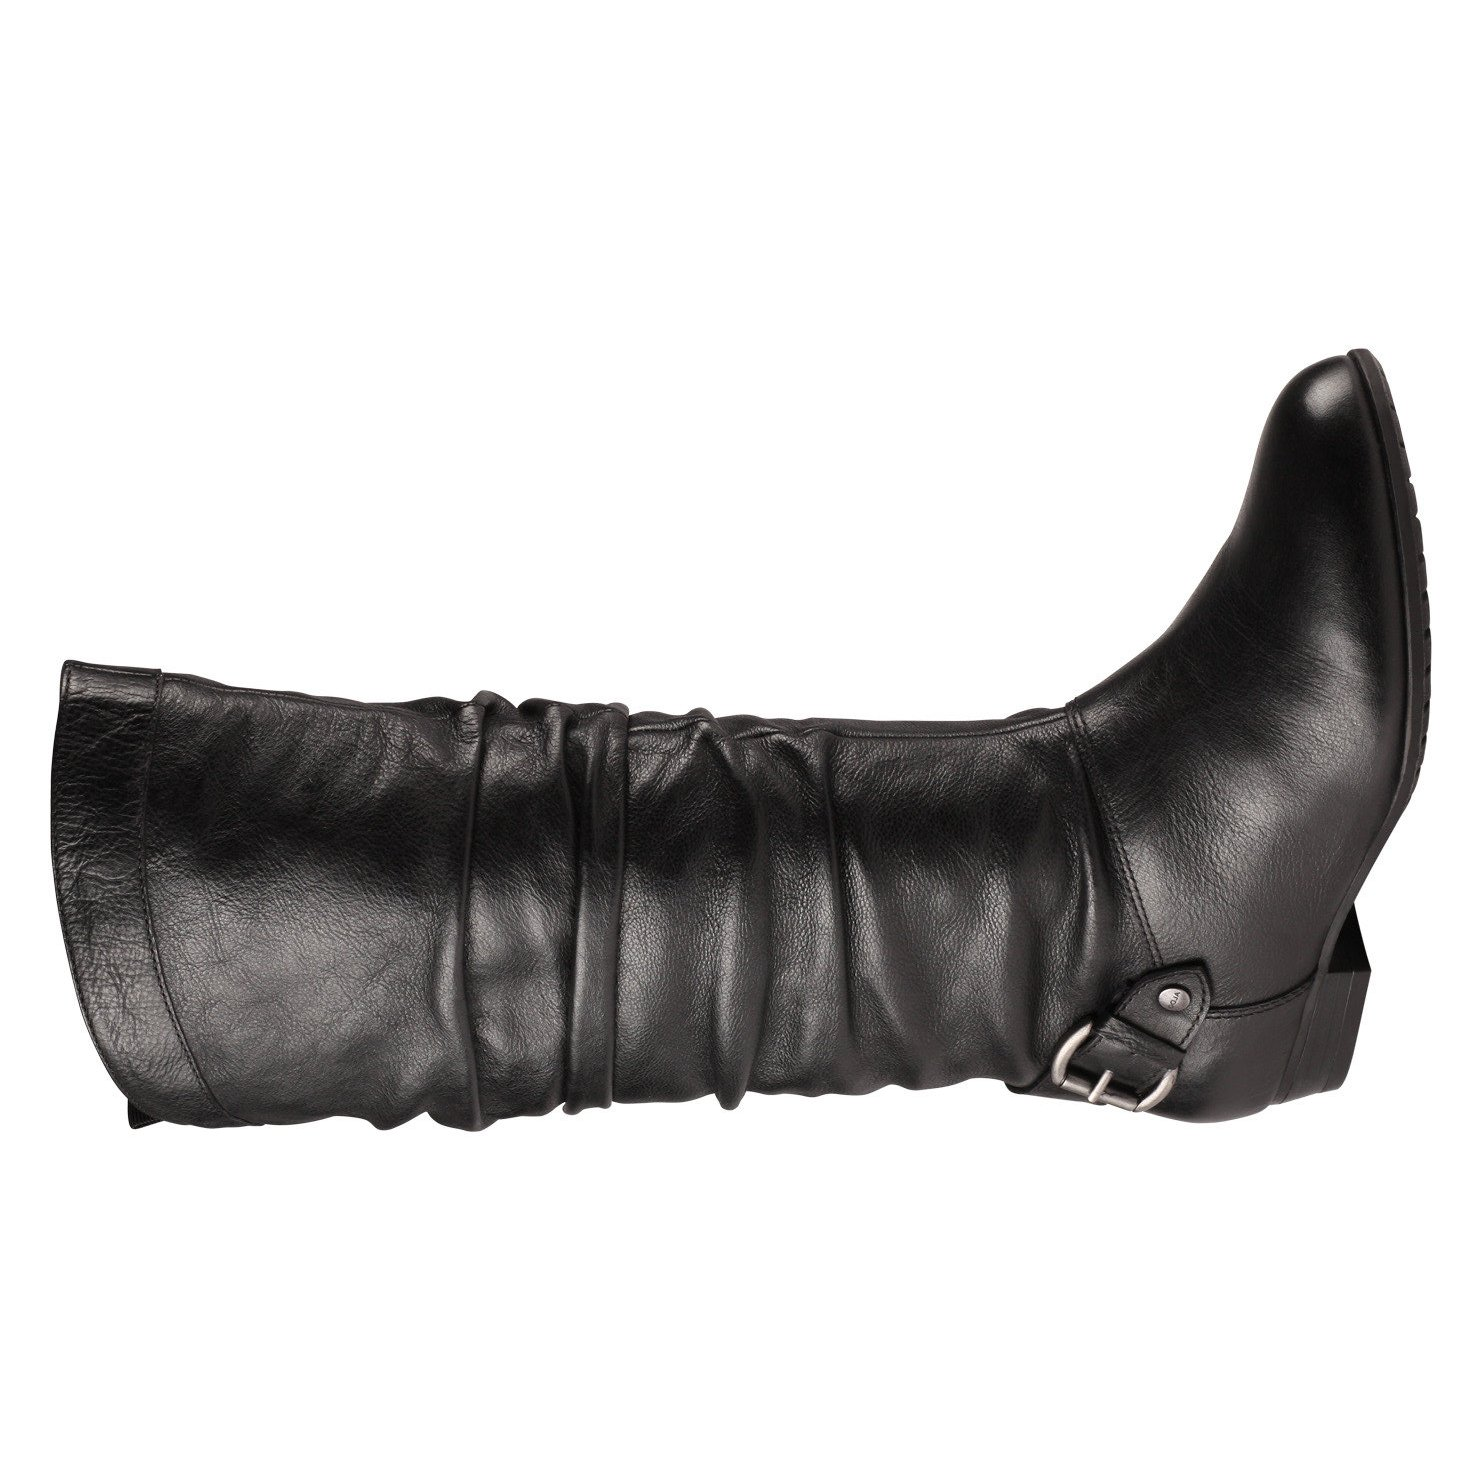 Find great deals on eBay for women long boots. Shop with confidence.